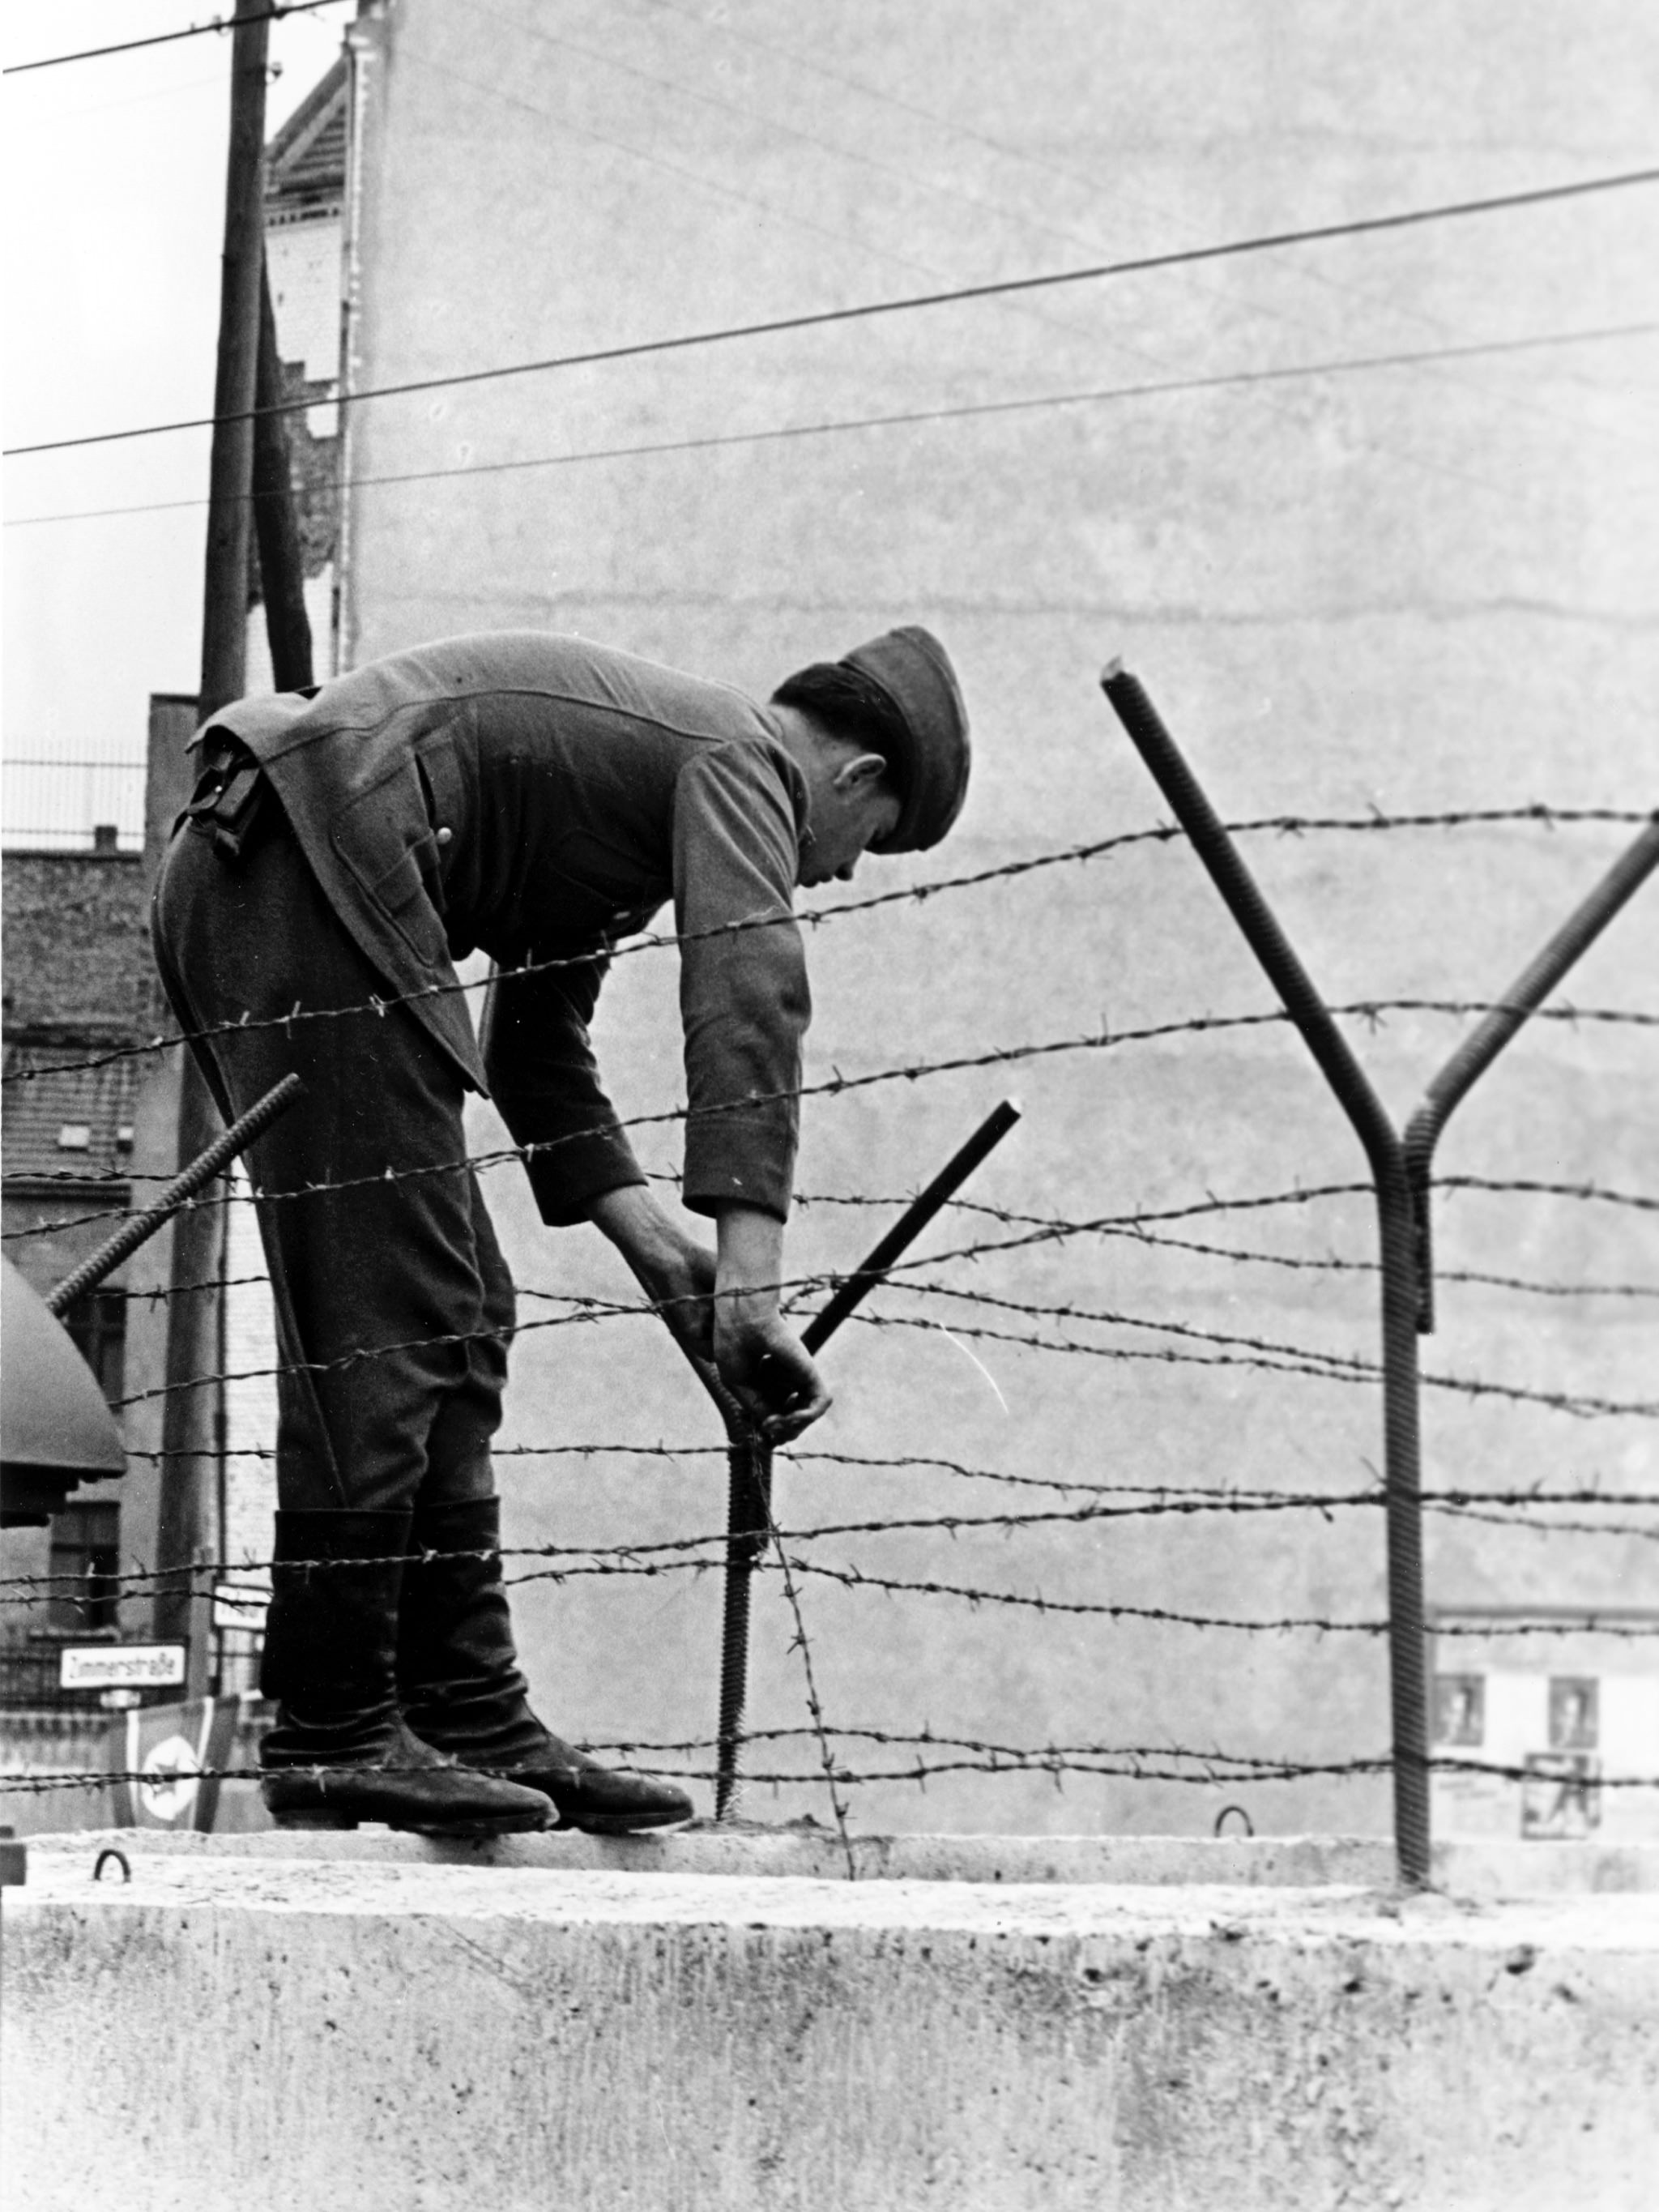 An East Berlin soldier secures a steel bar to hold the barbed wire atop the Berlin Wall on sector border in Berlin near Friedrichstrasse in Germany on Sept. 30, 1961. The Communists are tightening border security as a result of repeated escapes in this area to the West by East Germans.